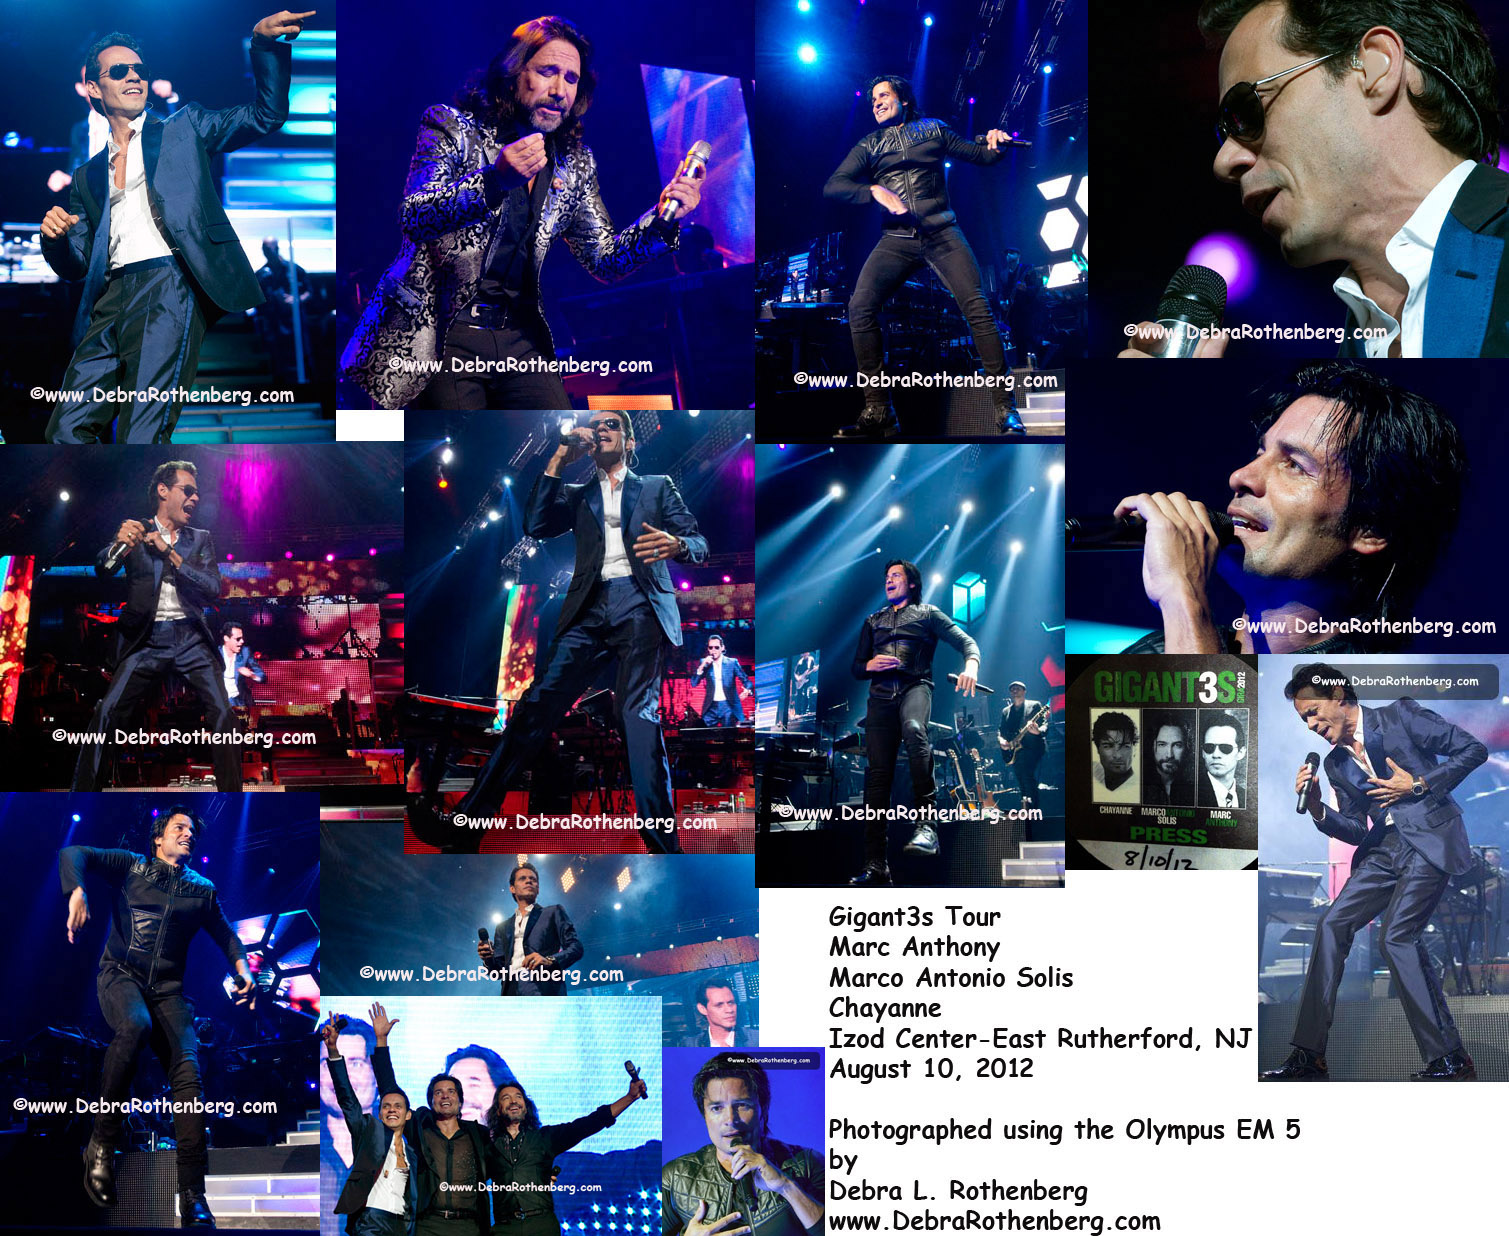 Debra L. Rothenberg Photographer | Gigant3s Tour with Marc Anthony ...